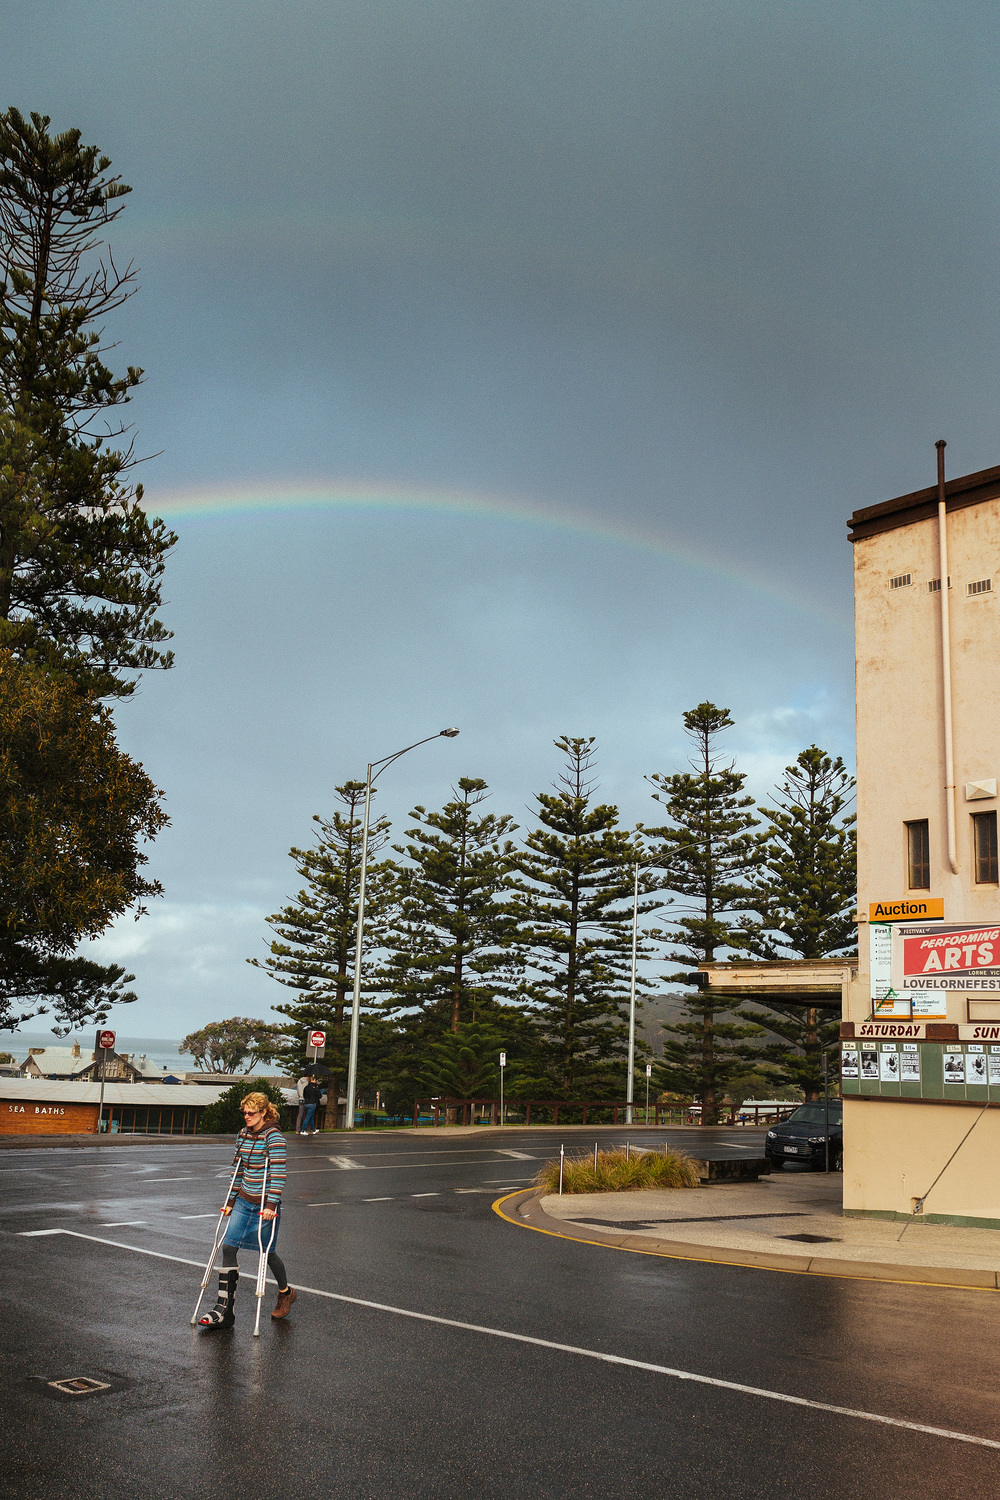 A lady on crutches crosses the road as a double rainbow forms in the sky behind her.